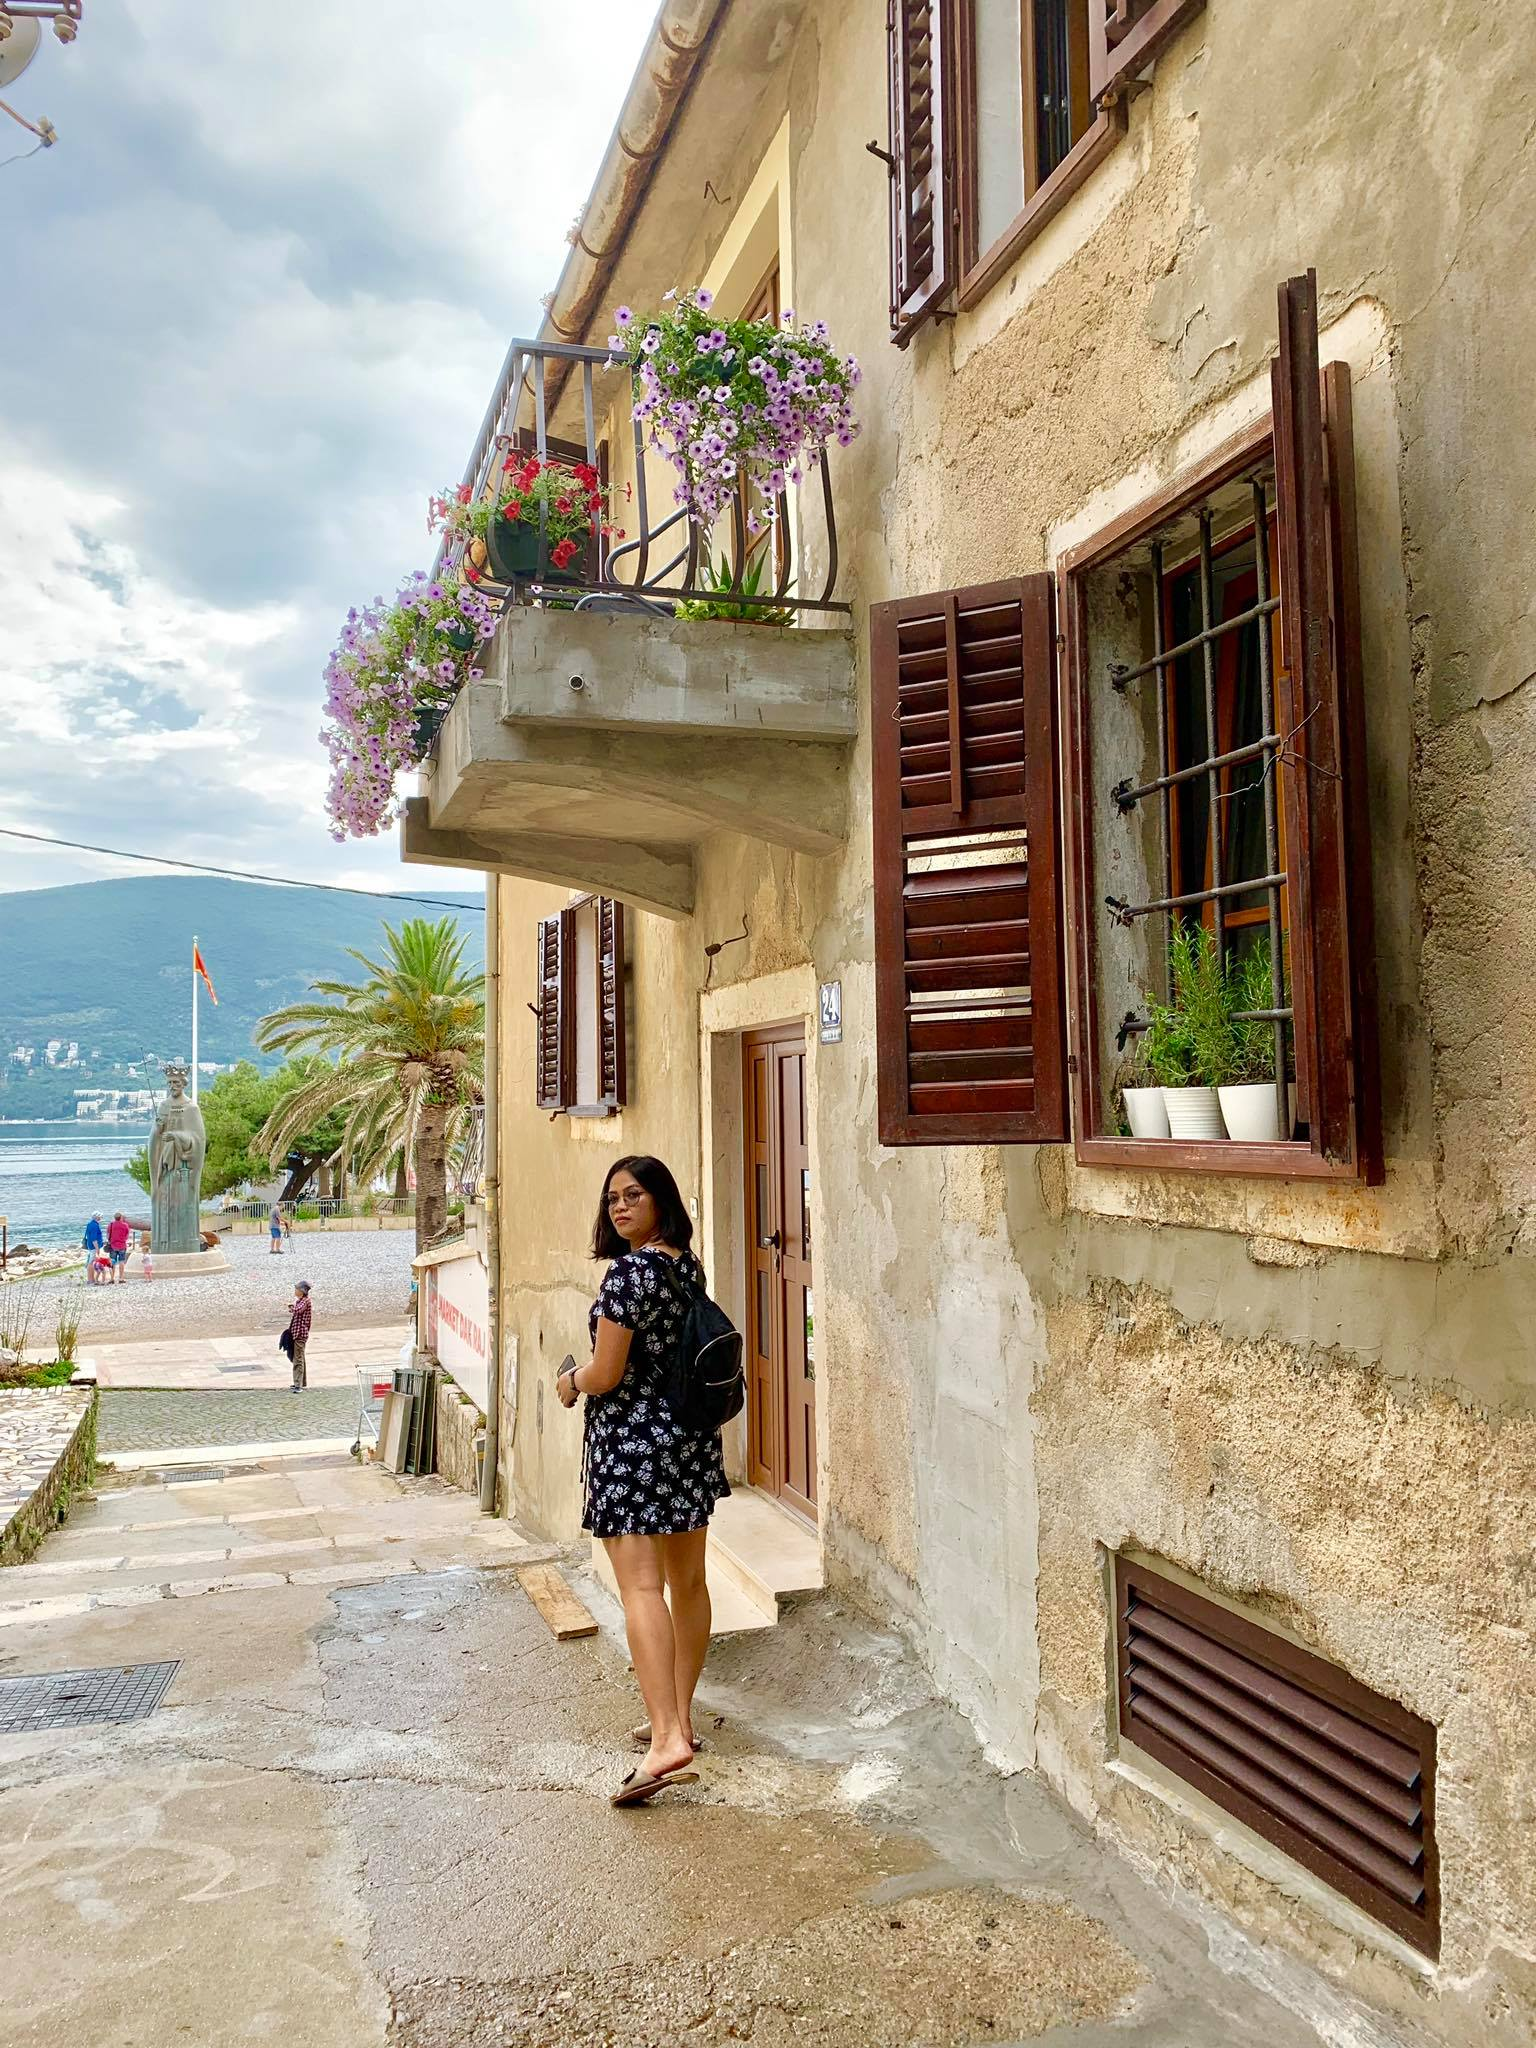 Expat Life in Montenegro Day 3 We have our first visitor already in our new home here in Herceg Novi4.jpg